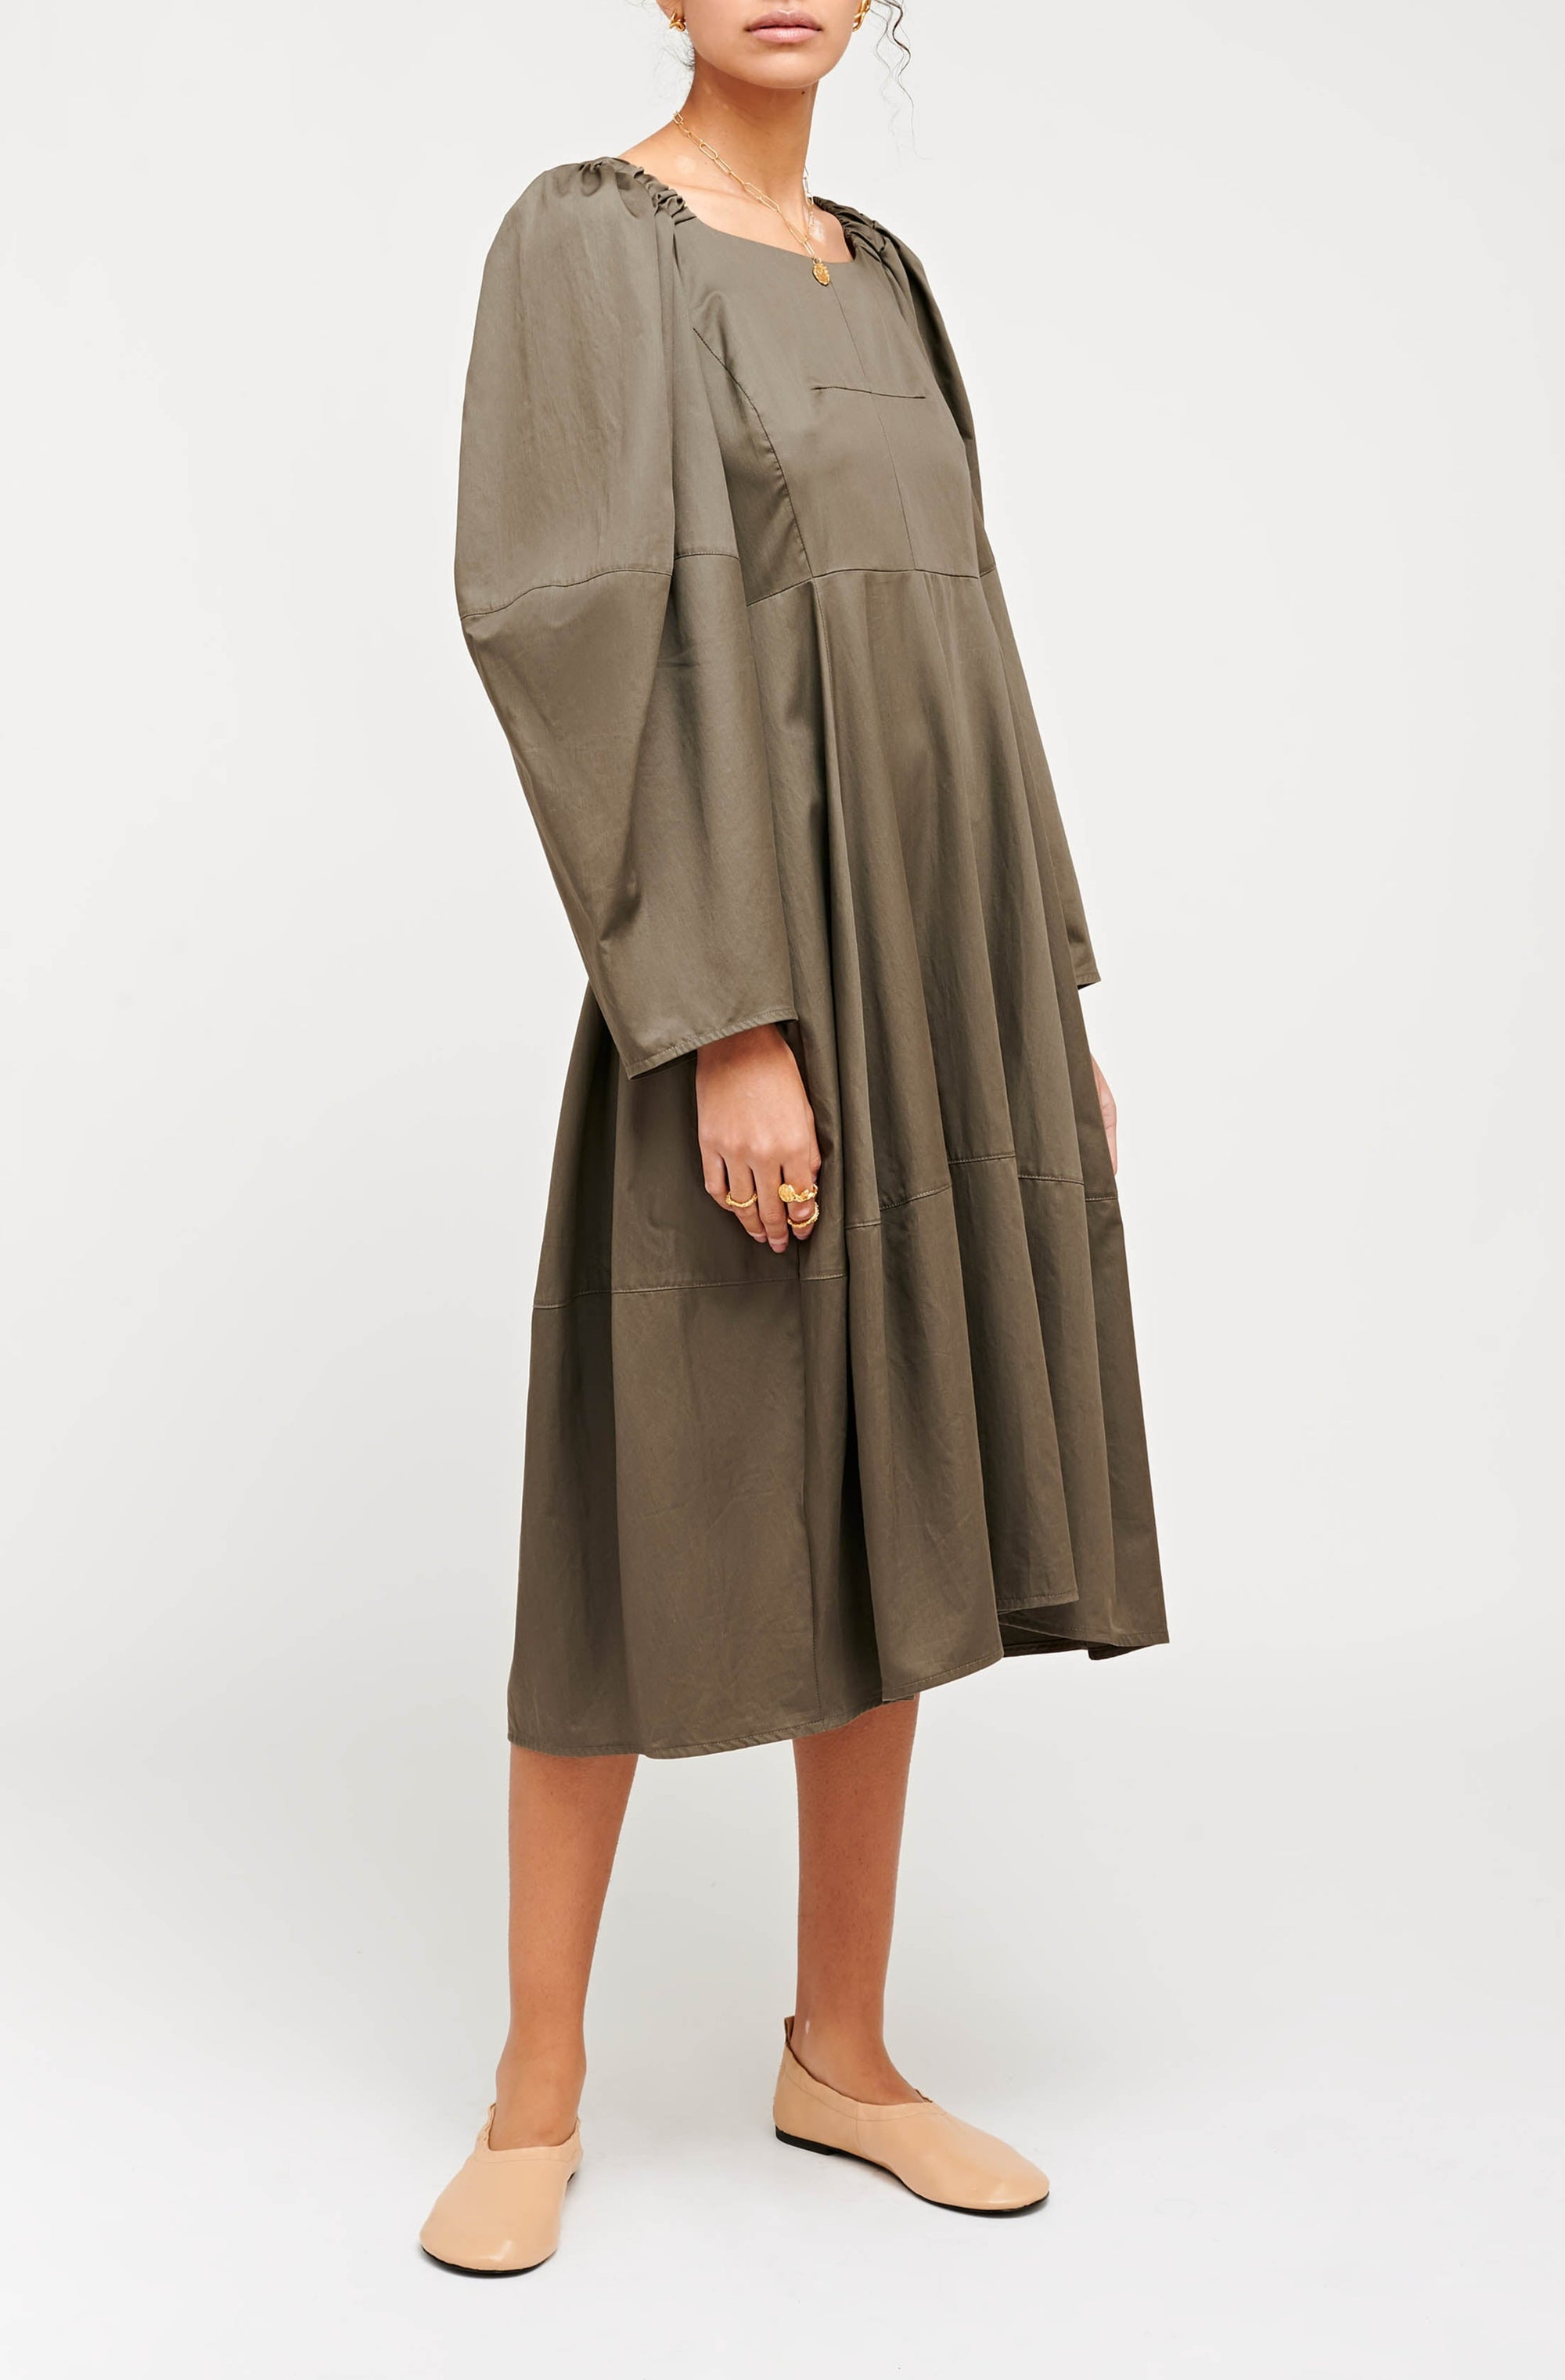 ANNI DRESS KHAKI